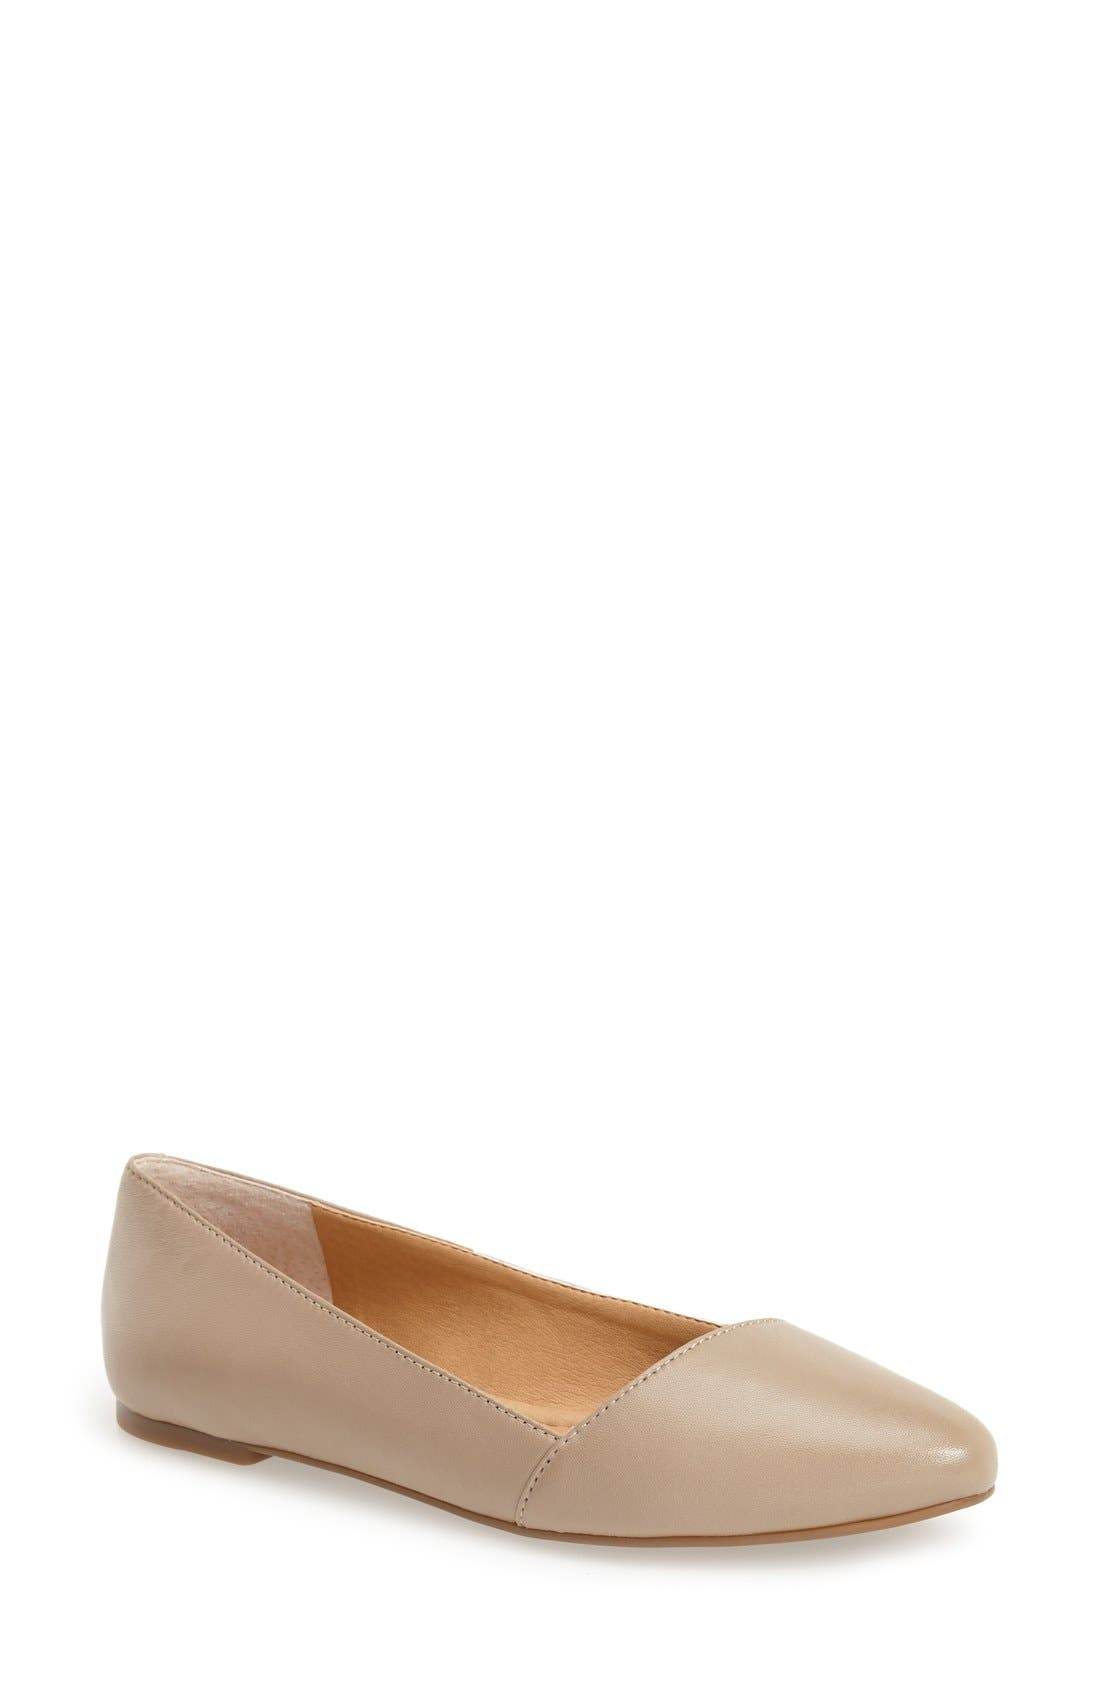 Alternate Image 1 Selected - Lucky Brand 'Archh' Flat (Women)